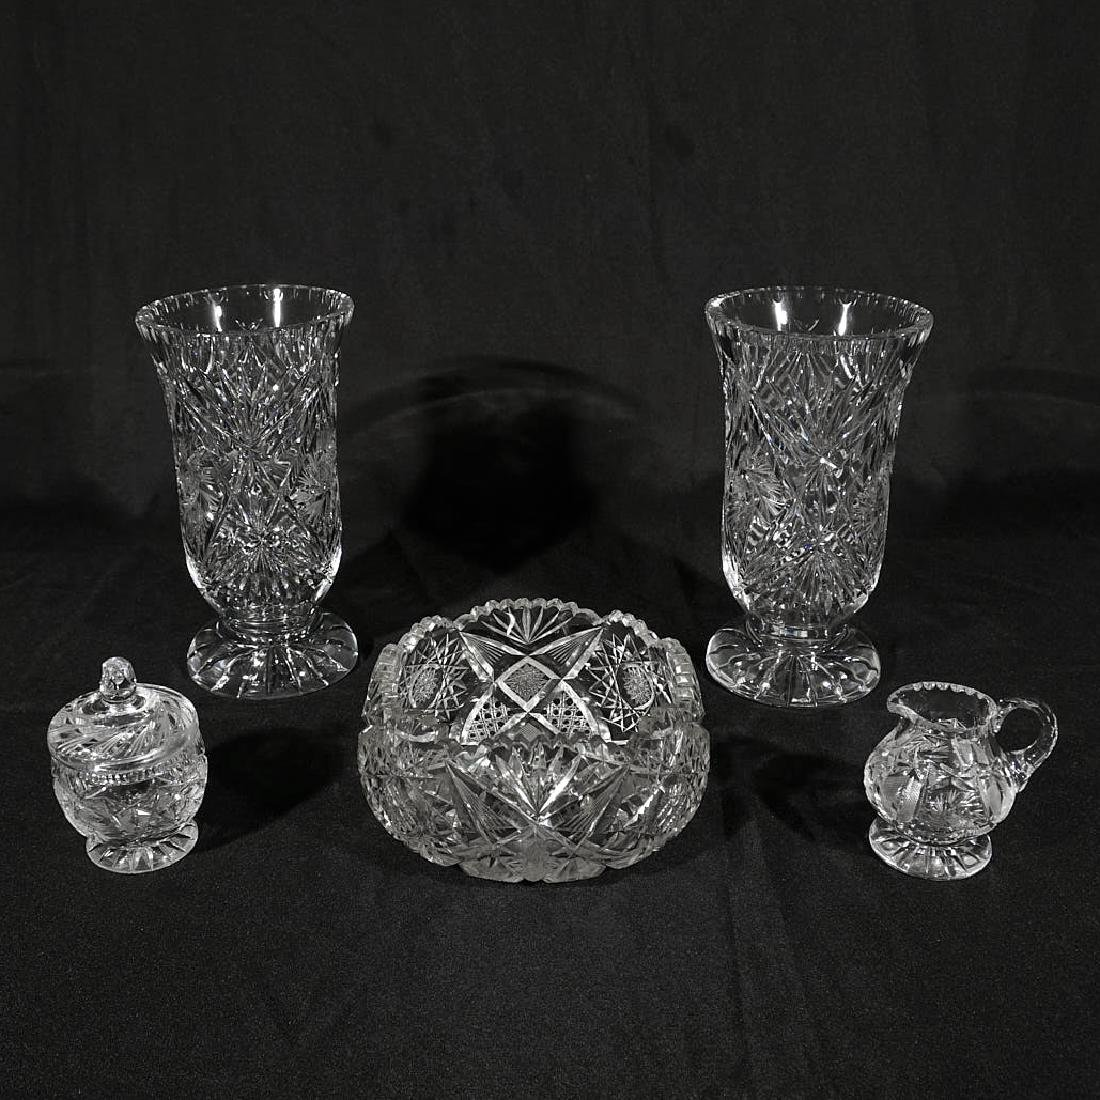 Five Pieces of Cut Crystal